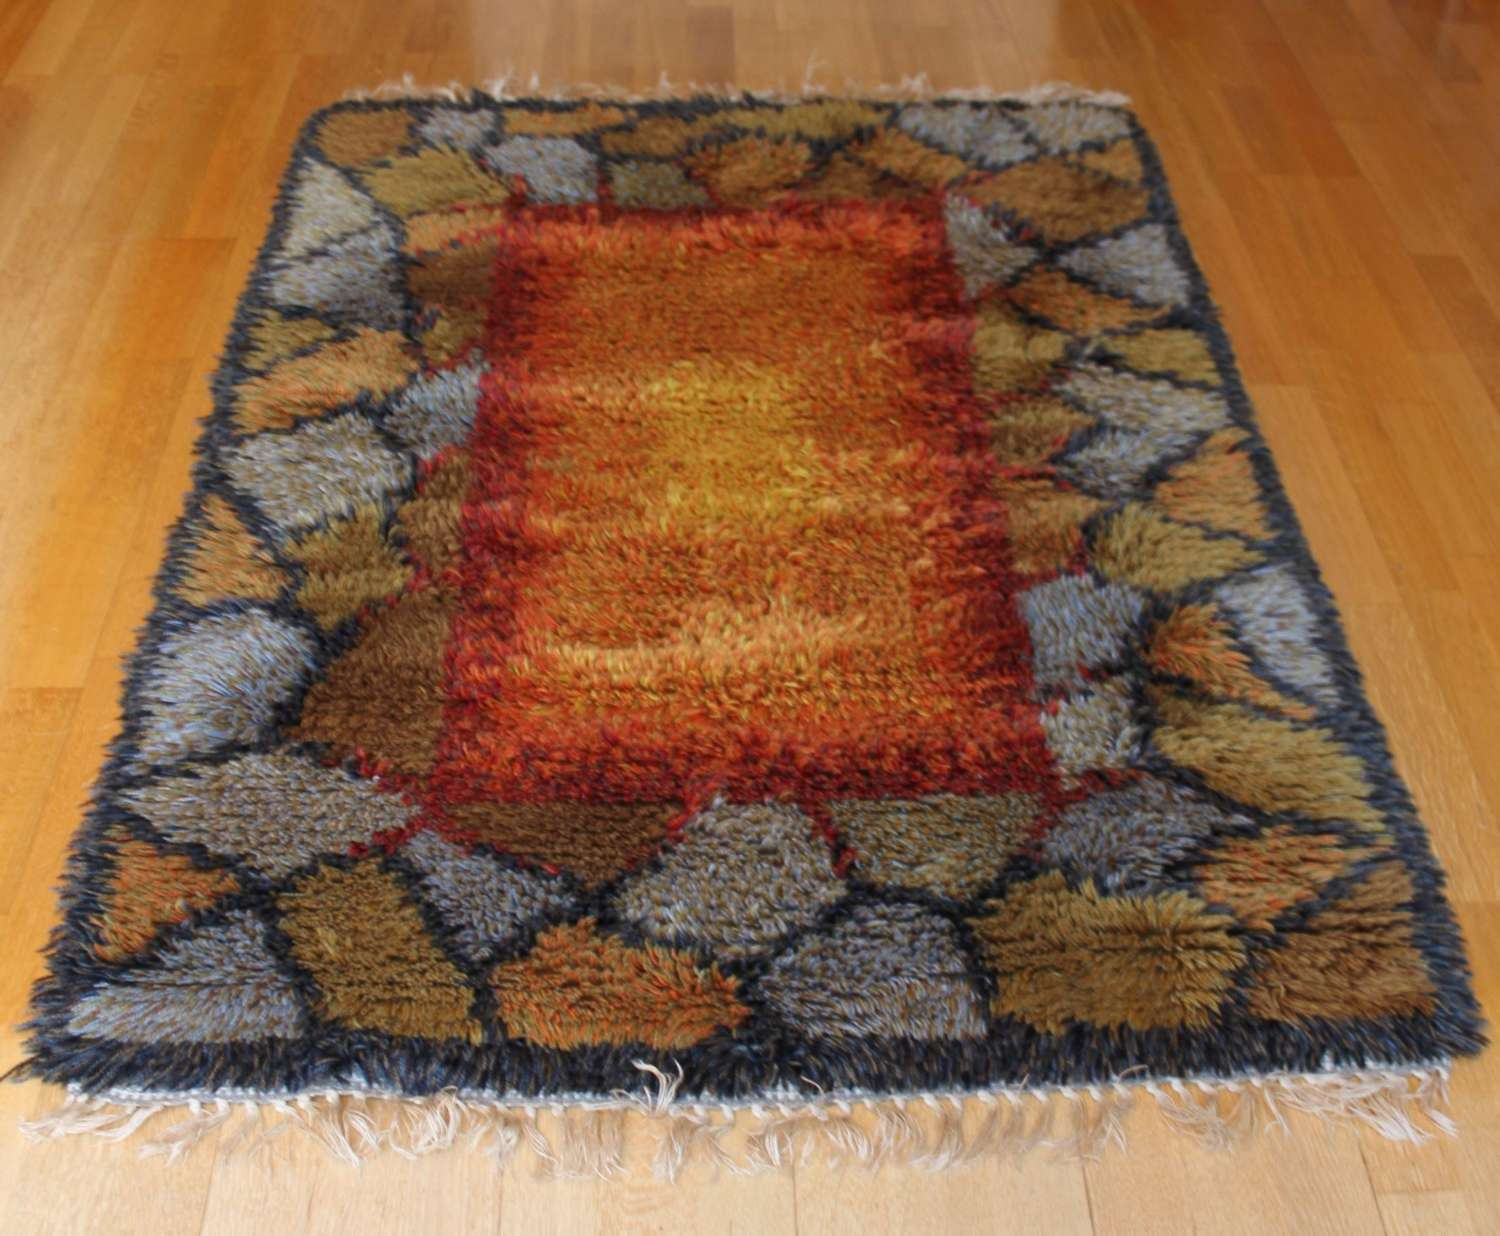 Rya woollen rug Sweden 1970s Crazy paving design